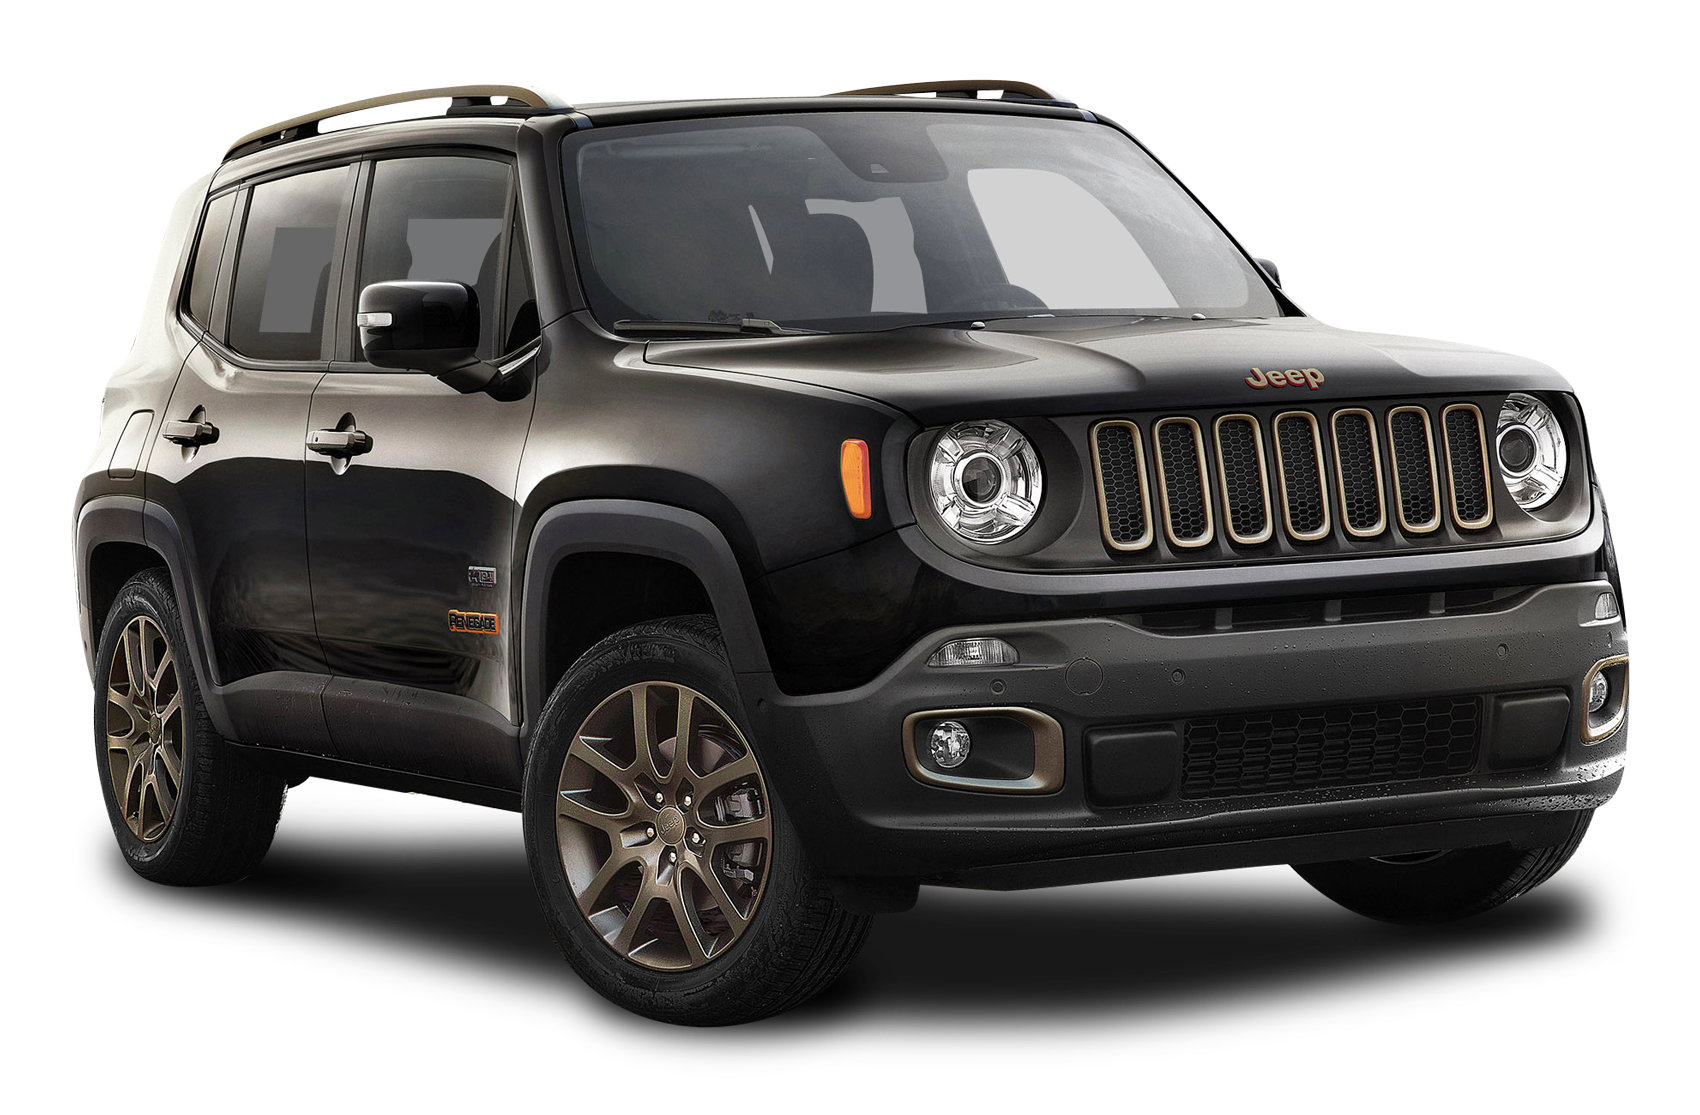 Car png images free. Jeep clipart renegade jeep